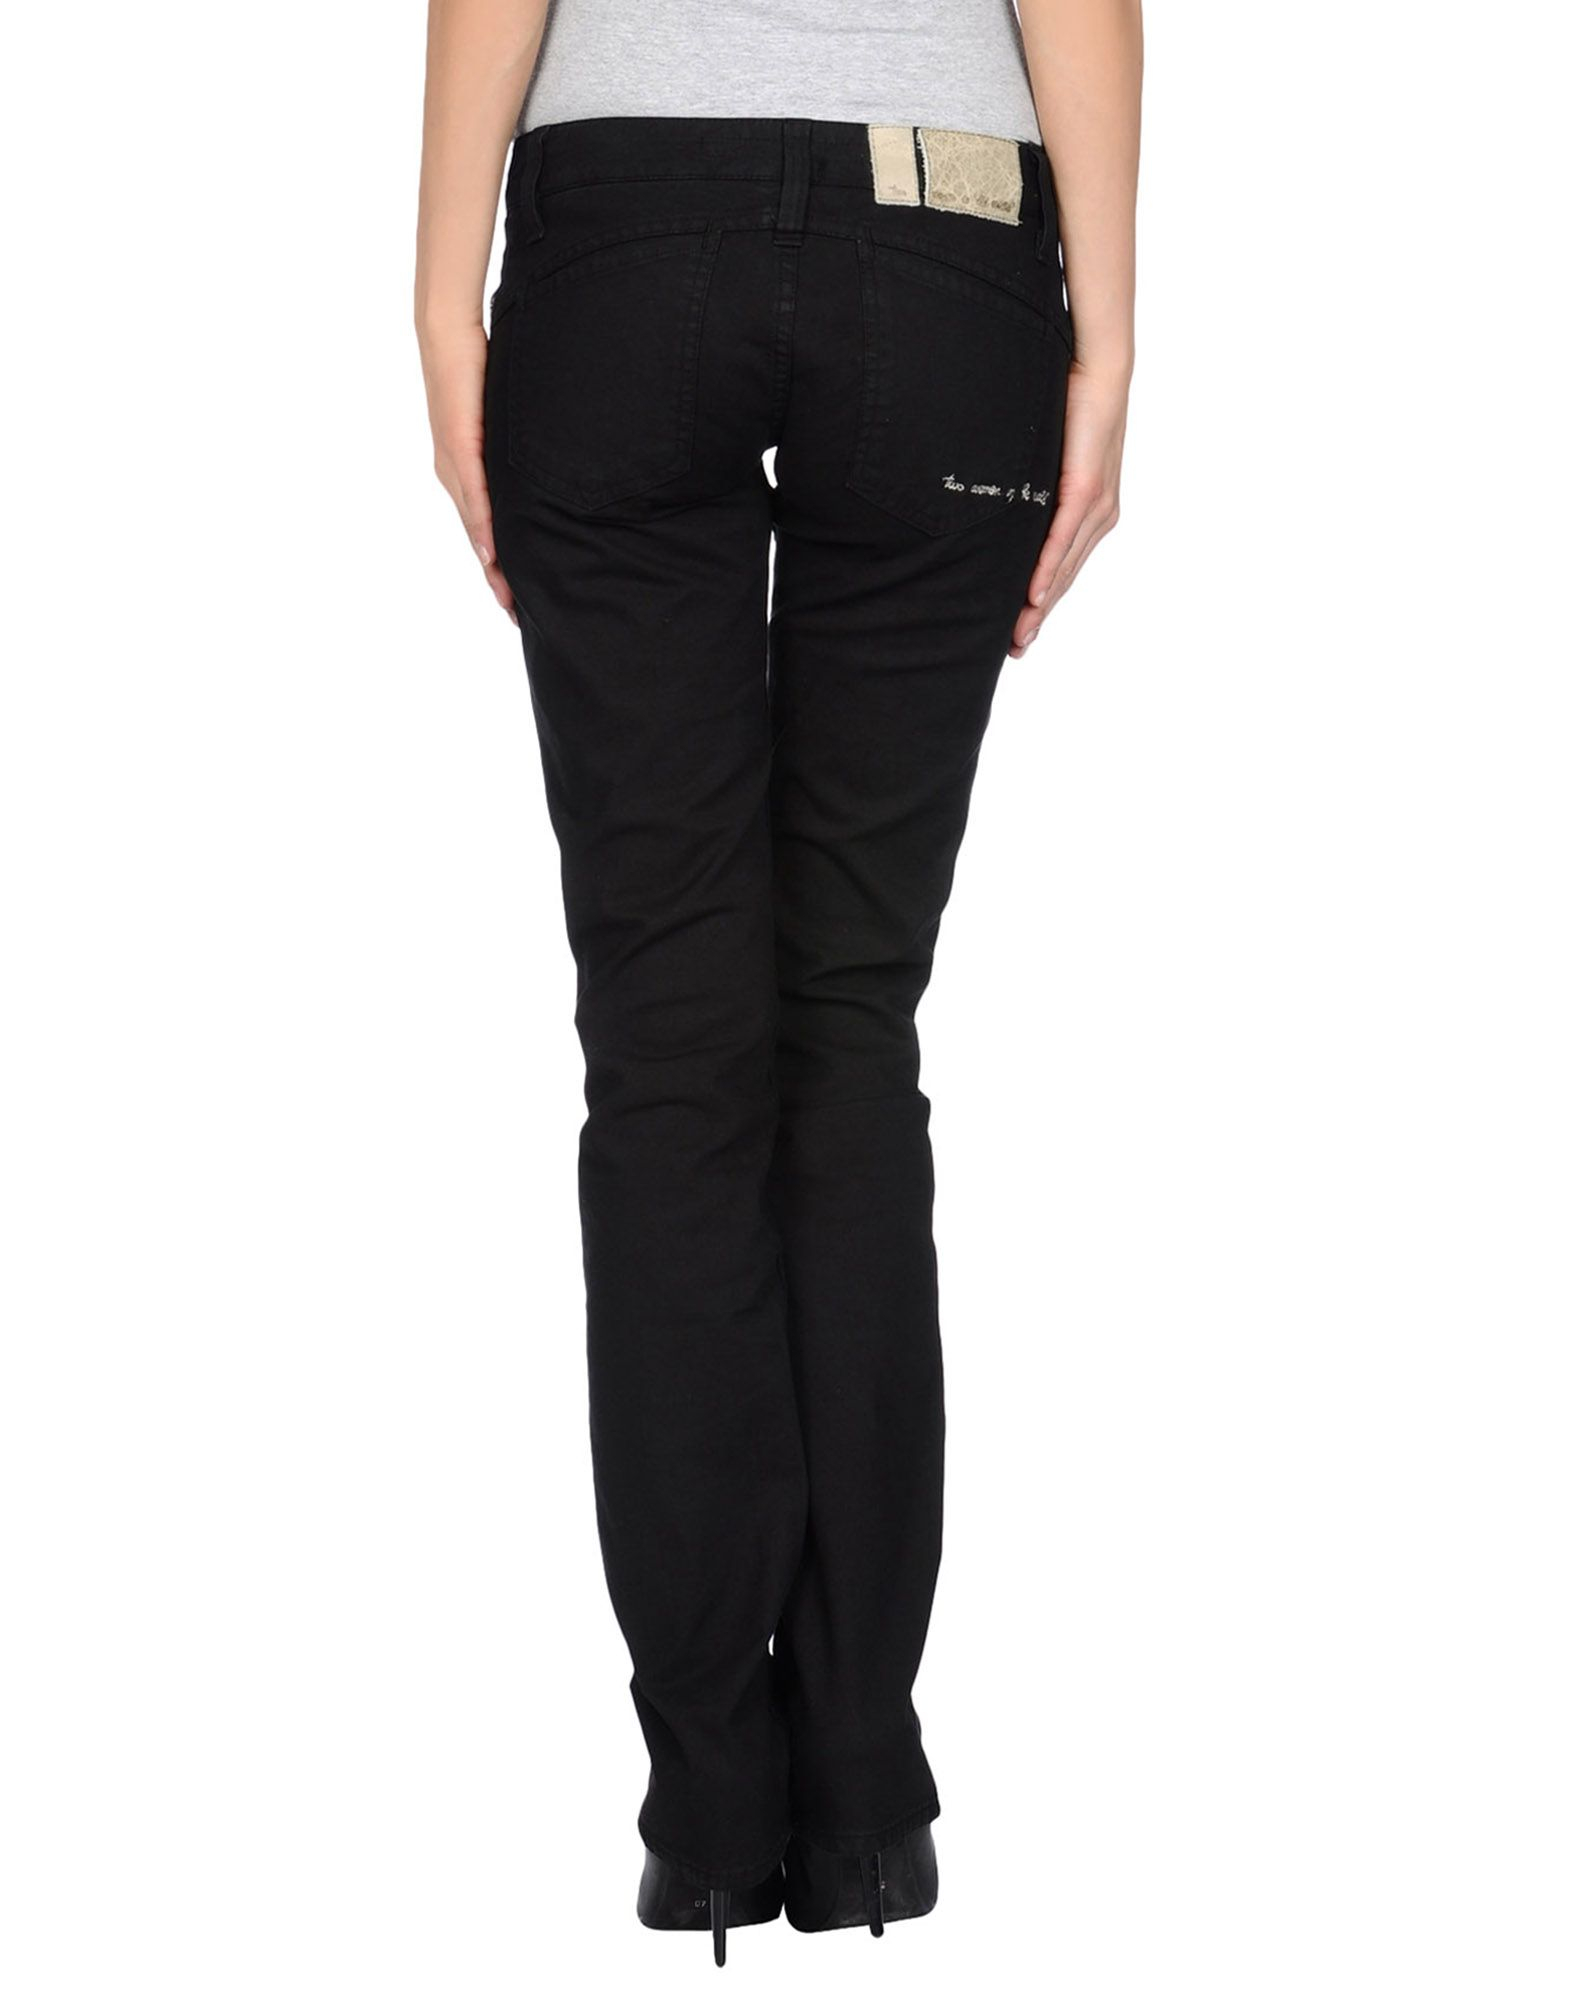 Lulus Exclusive! Dressed up or down, the Lulus Sebastian Black Pants are sure to make a great impression! These wear-anywhere woven pants have a drawstring waist (with a /5().